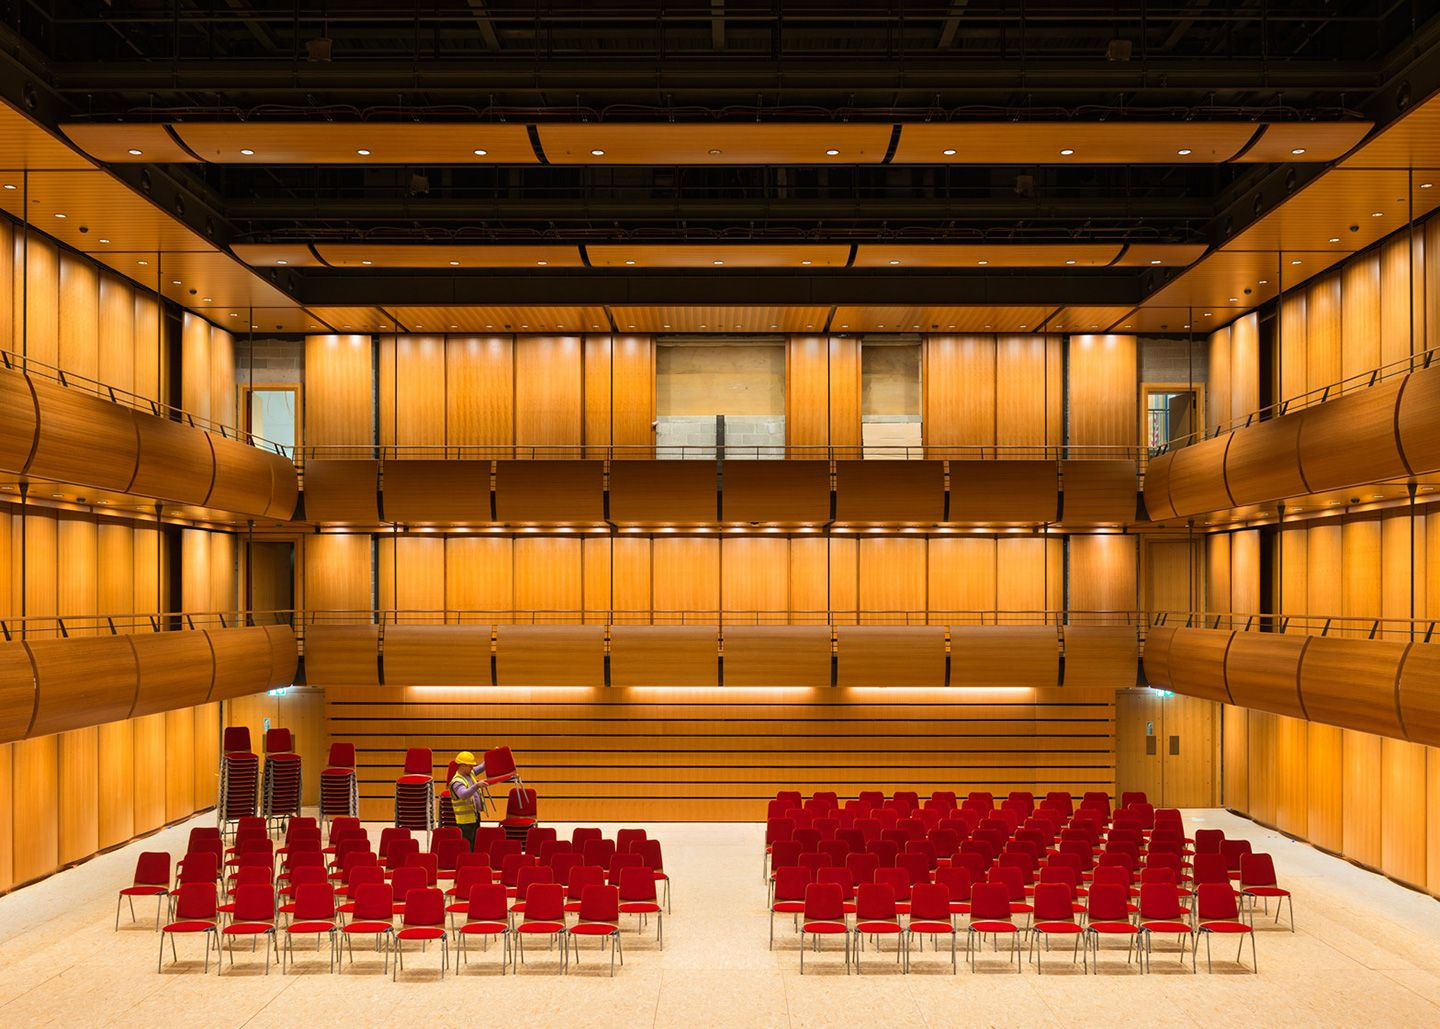 Alternative Stage. Greek National Opera. Stavros Niarchos Foundation Cultural Center by Renzo Piano. Photograph © Yiorgis Yerolymbos, courtesy of Renzo Piano and Stavros Niarchos Foundation.